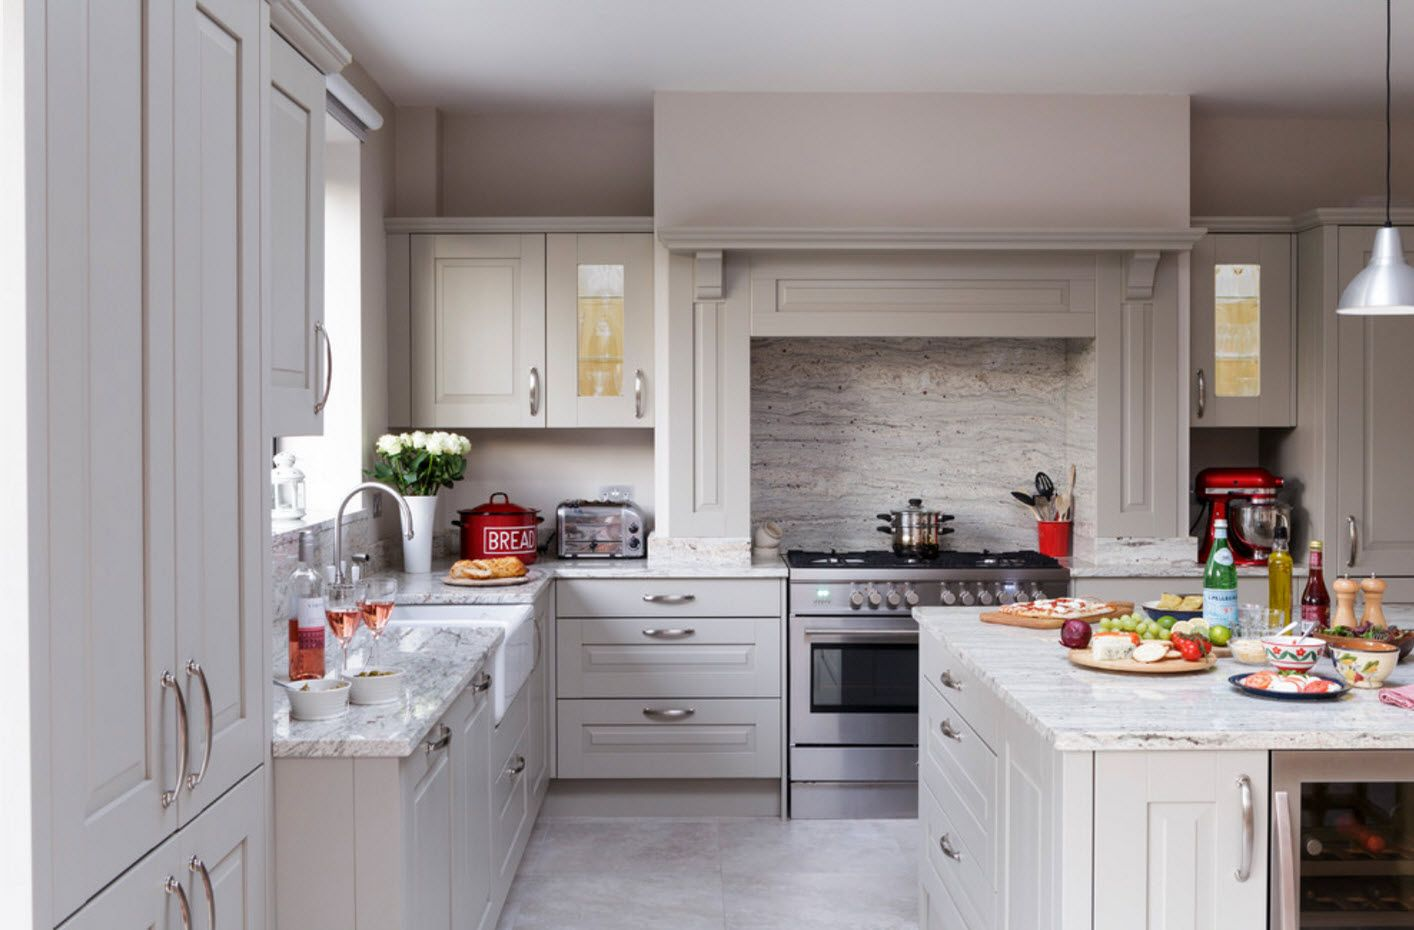 100+ Photo Design Ideas of Modern, Comfortable IKEA Kitchens. Modern rusticailty in the large room